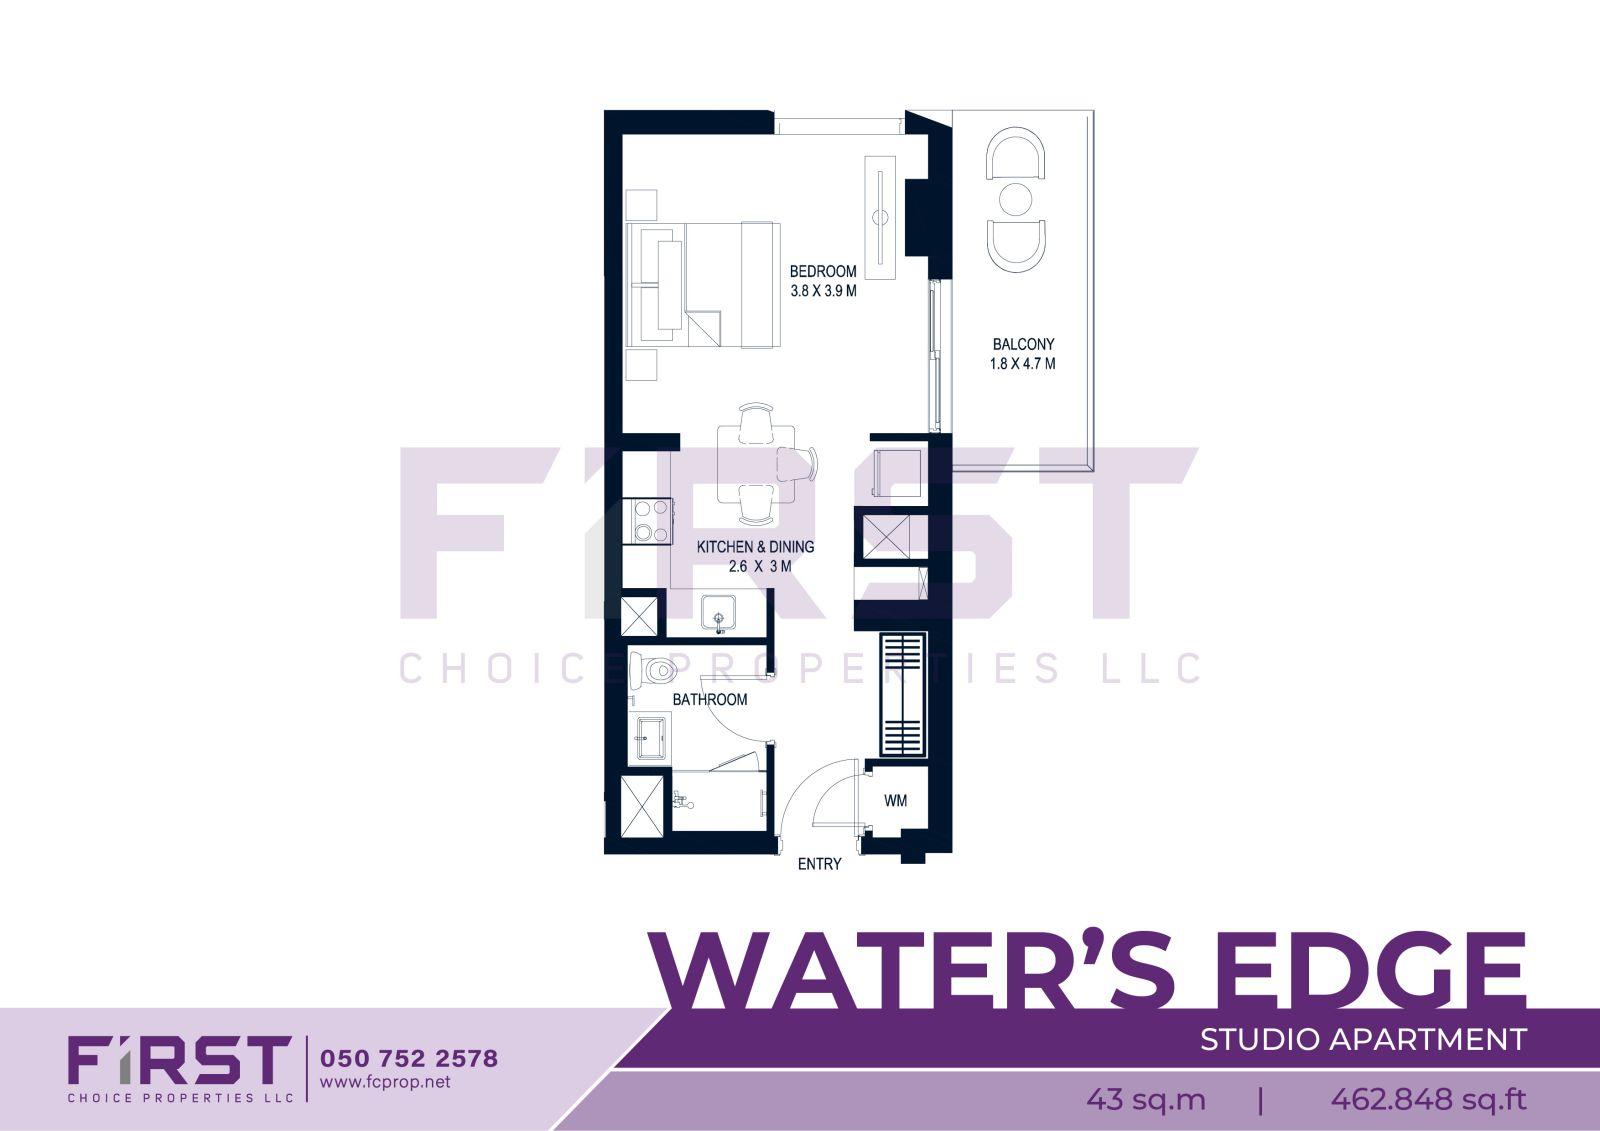 Yas Island Water's Edge Studio 43 sq.m 462.848 sq.ft .jpg